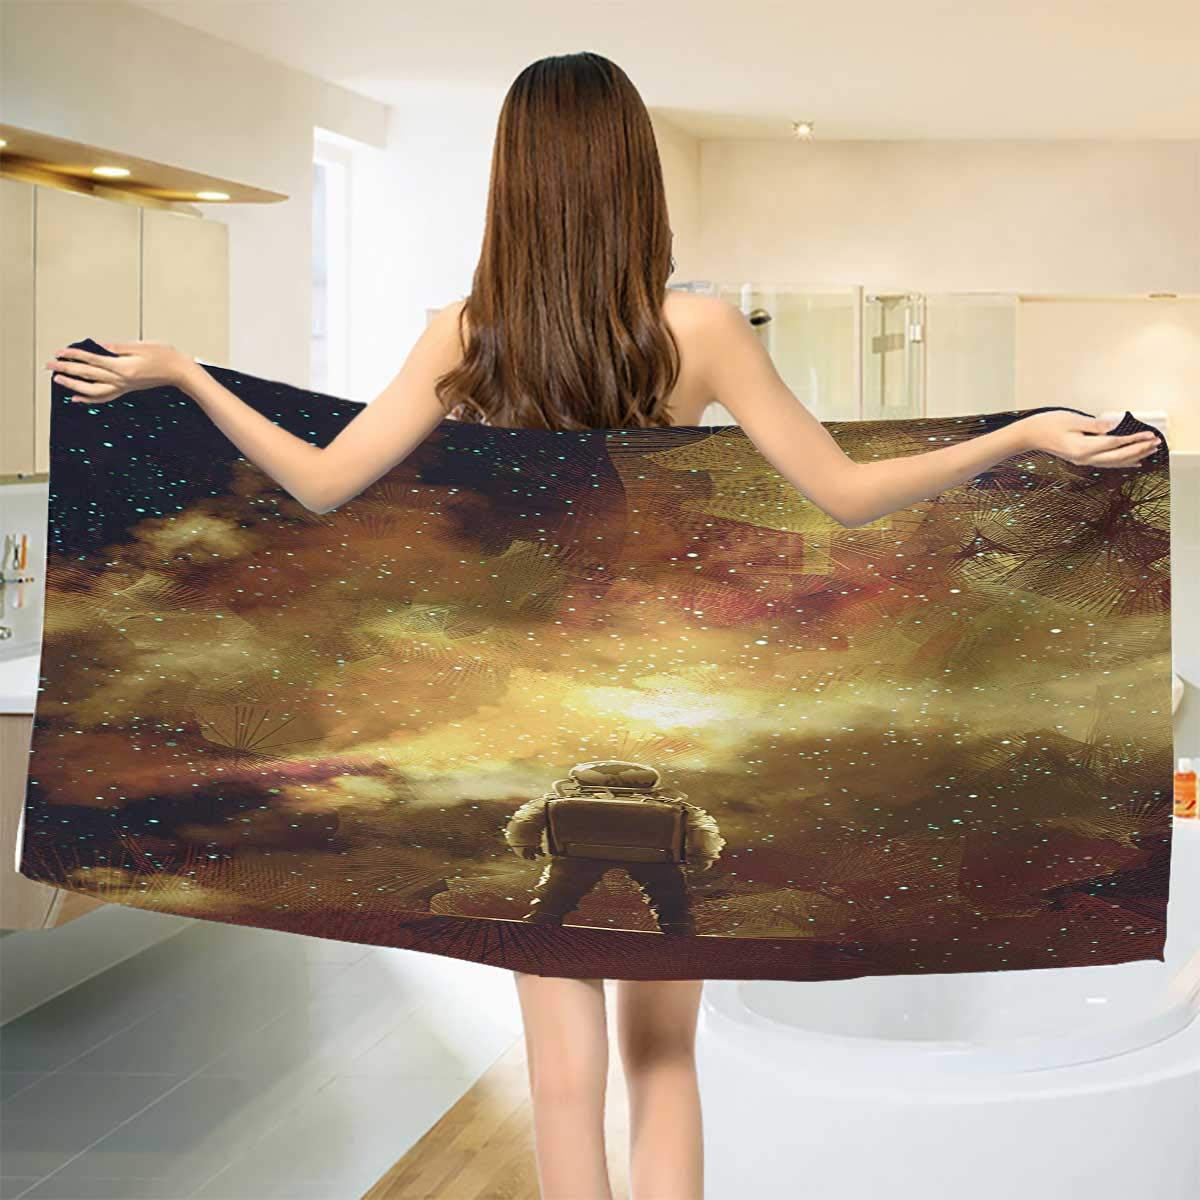 Chaneyhouse Fantasy,Baby Bath Towel,Cosmonaut Person Standing Against Cosmos Nebula Themed Solar Themed Artwork Print,Print Wrap Towels,Tan Black Size: W 10'' x L 39.5''